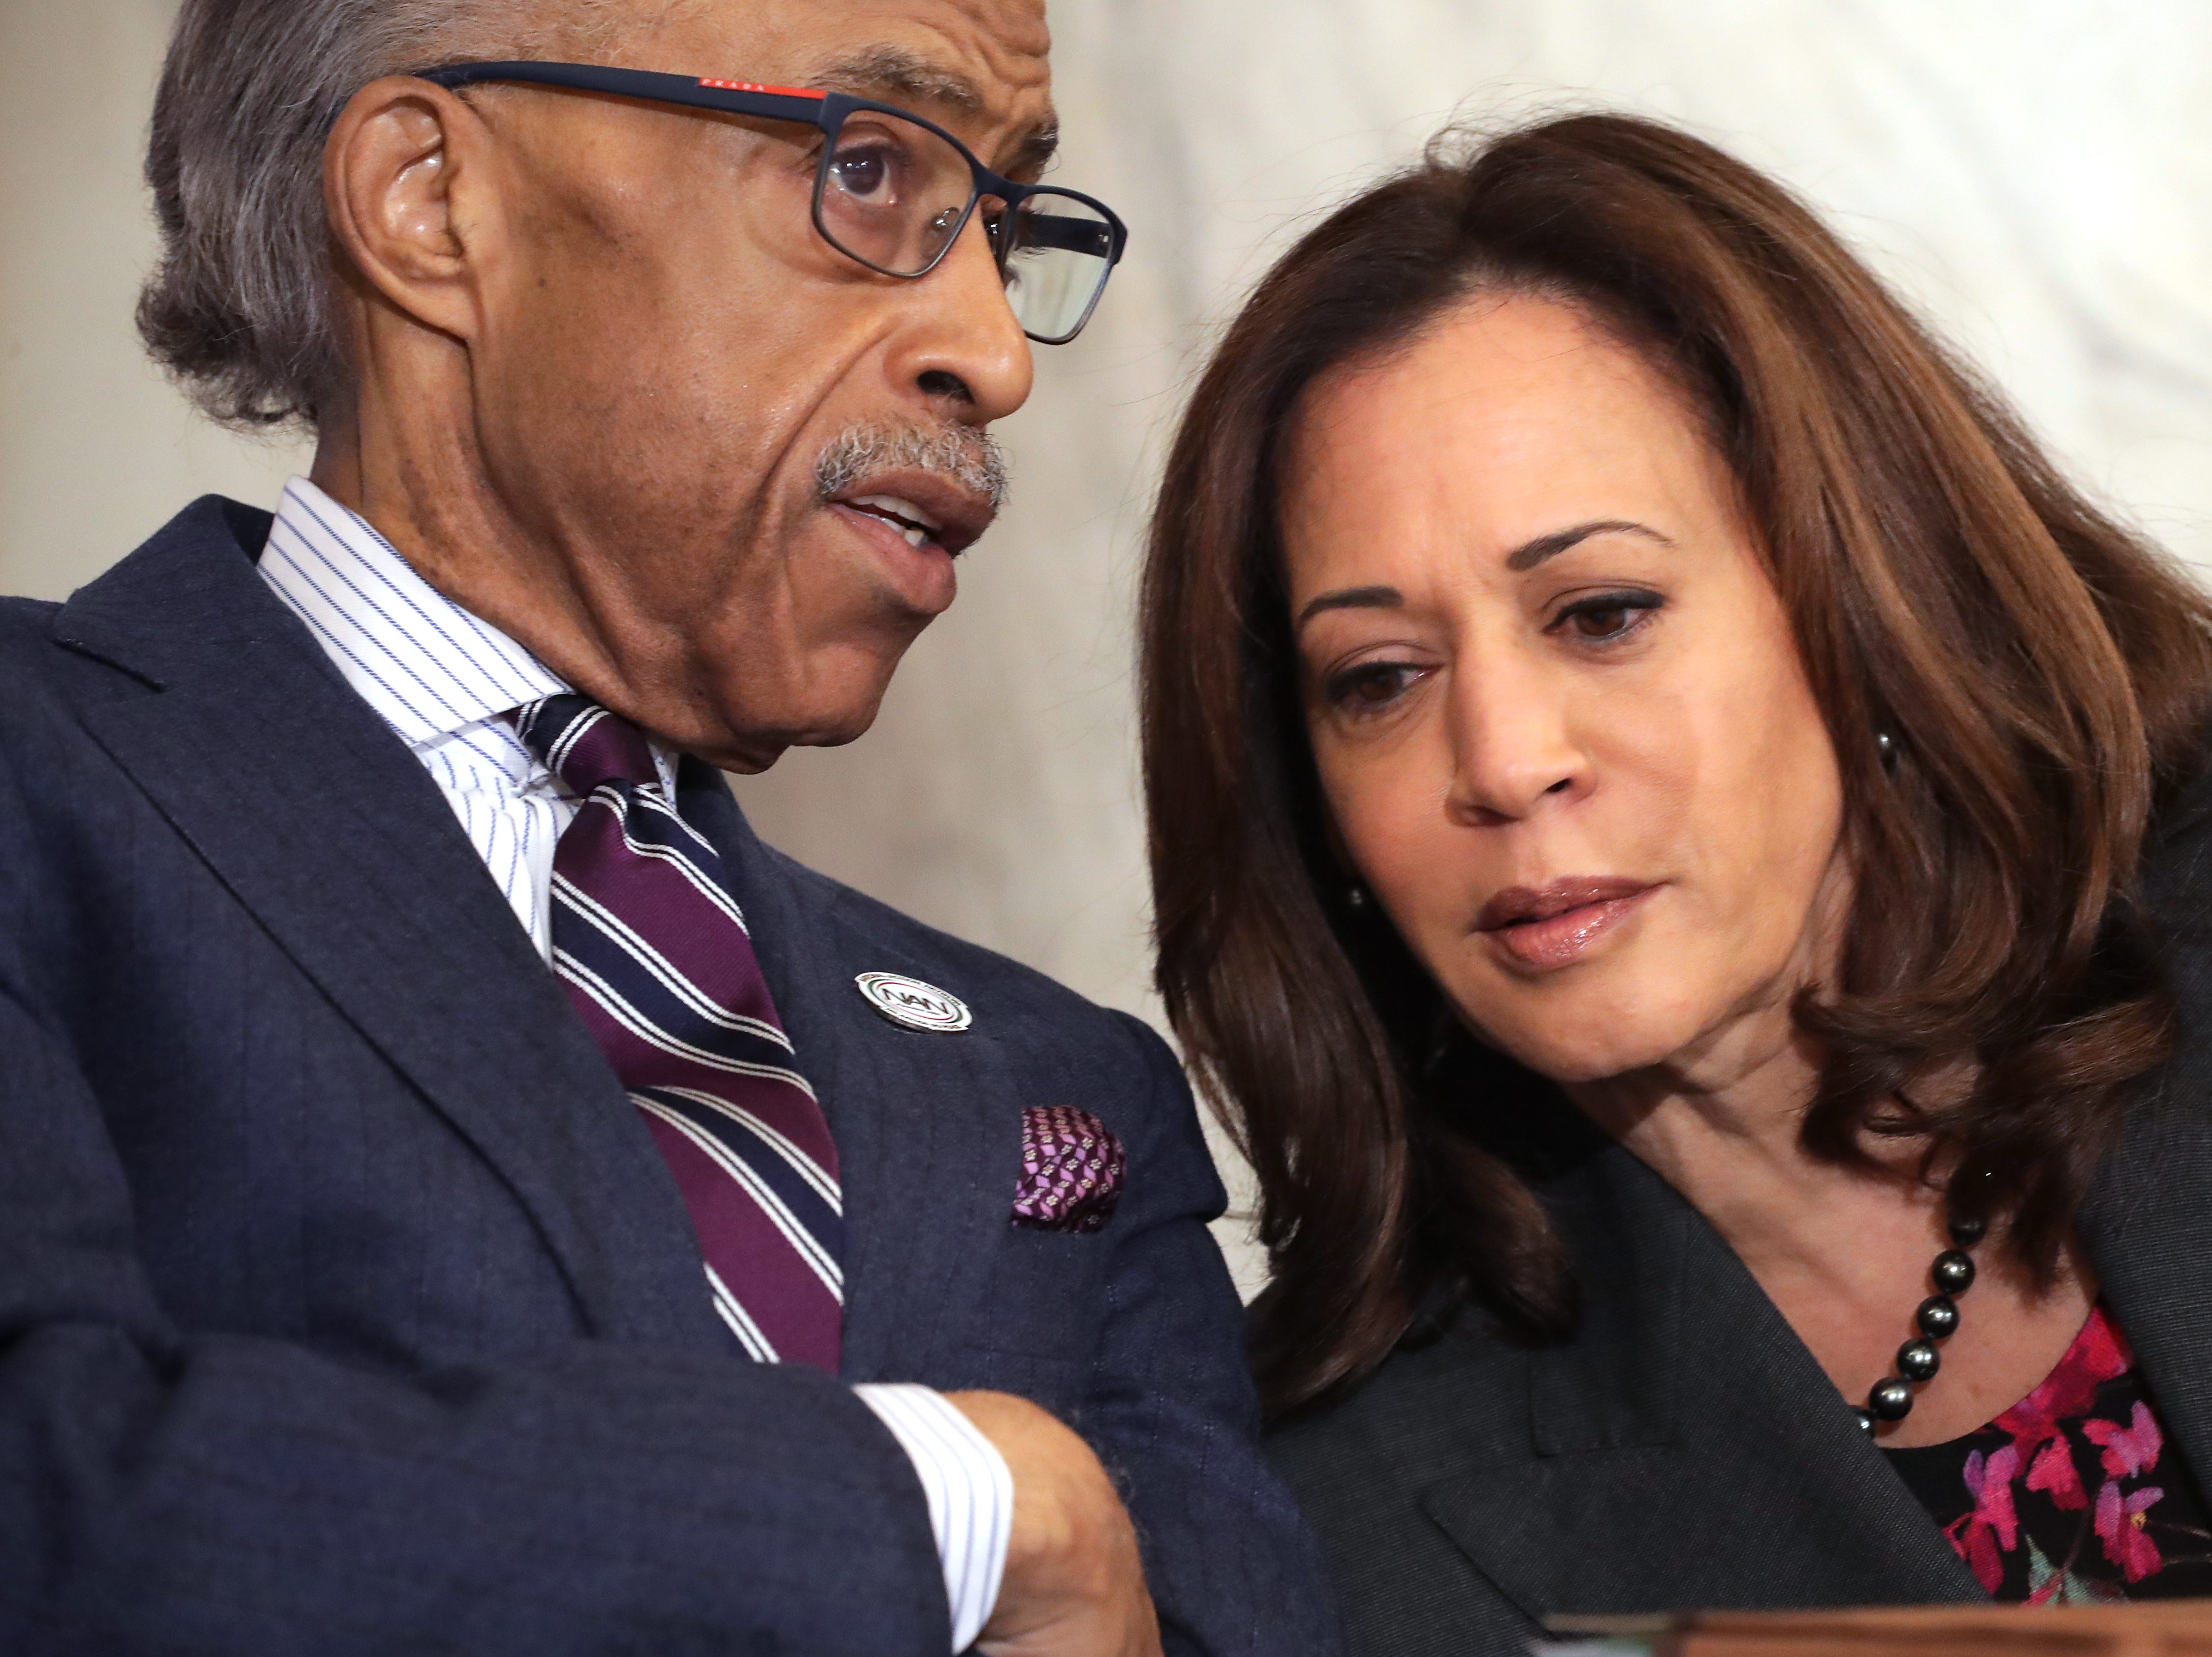 The Rev. Al Sharpton talks with Sen. Kamala Harris, D-Calif., during a post-midterm election meeting of Sharpton's National Action Network in the Kennedy Caucus Room at the Russell Senate Office Building on Capitol Hill, November 13, 2018, in Washington, D.C. Politicians believed to be considering a run for the 2020 Democratic party nomination, including Sen. Elizabeth Warren, D-Mass., and Harris addressed the network meeting as well as House members vying for leadership positions.